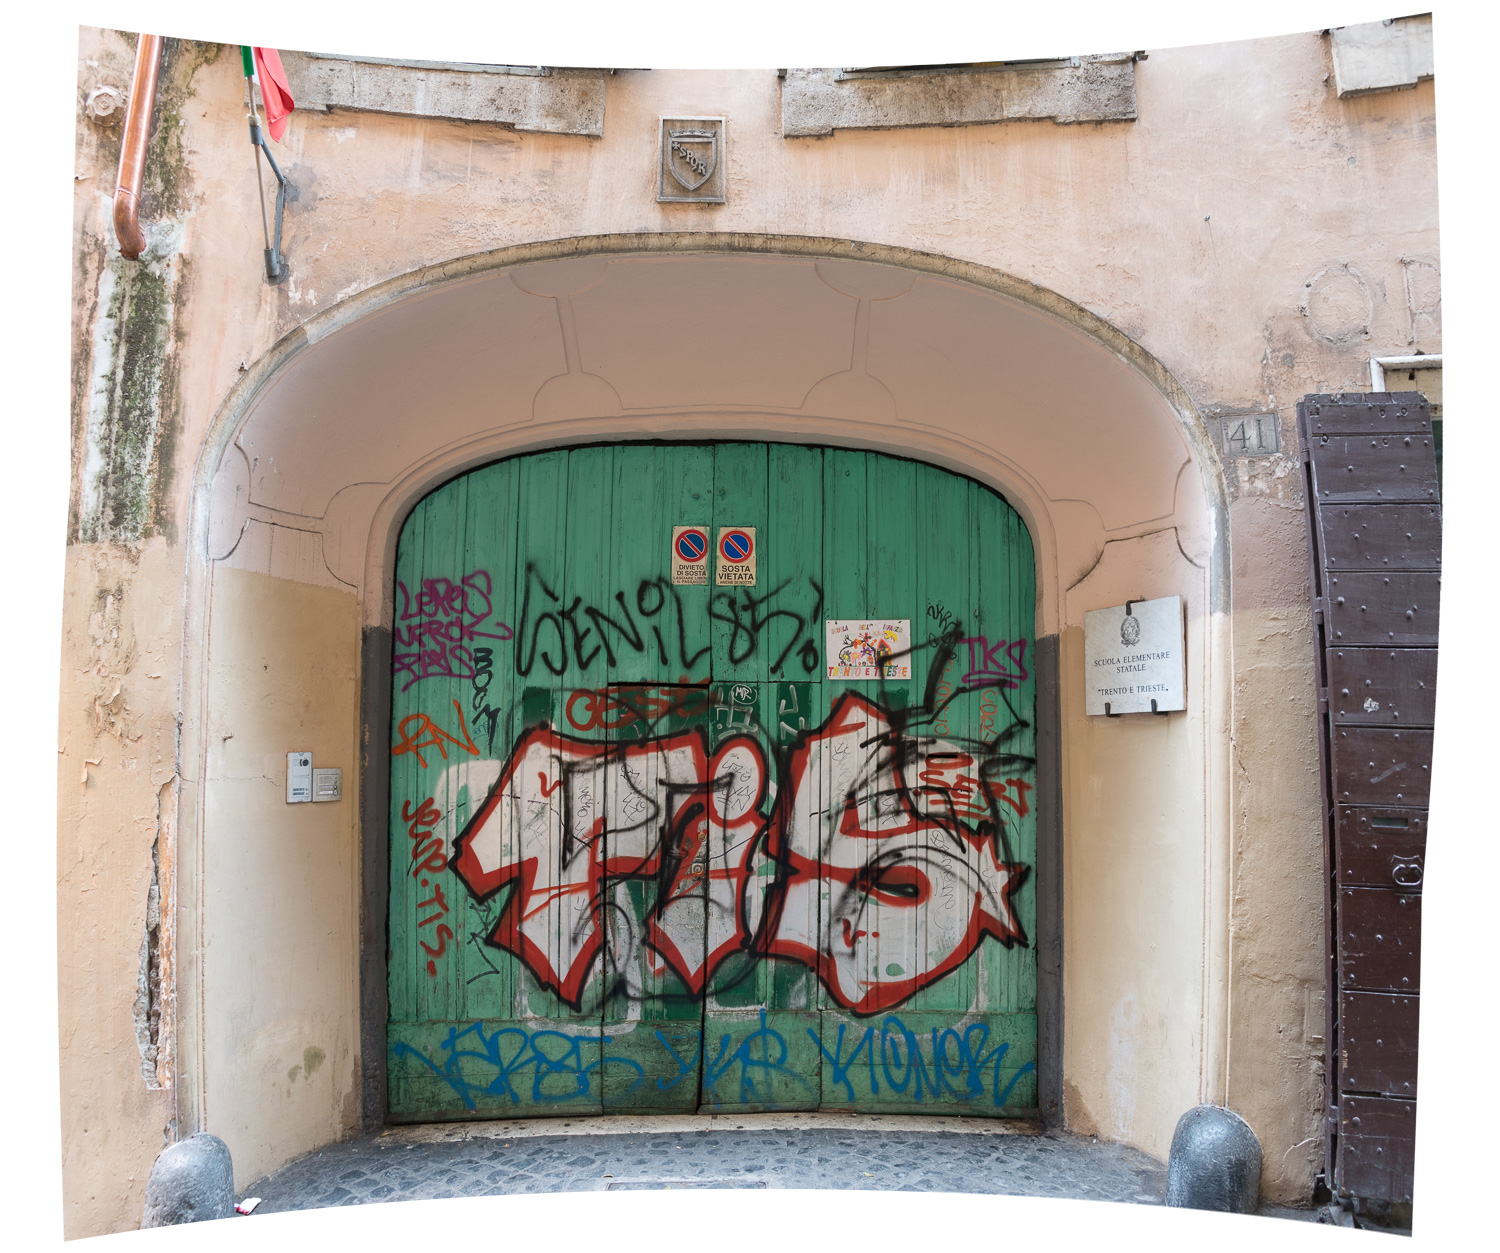 The original graffiti'd school entrance - two photos stitched together in Photoshop